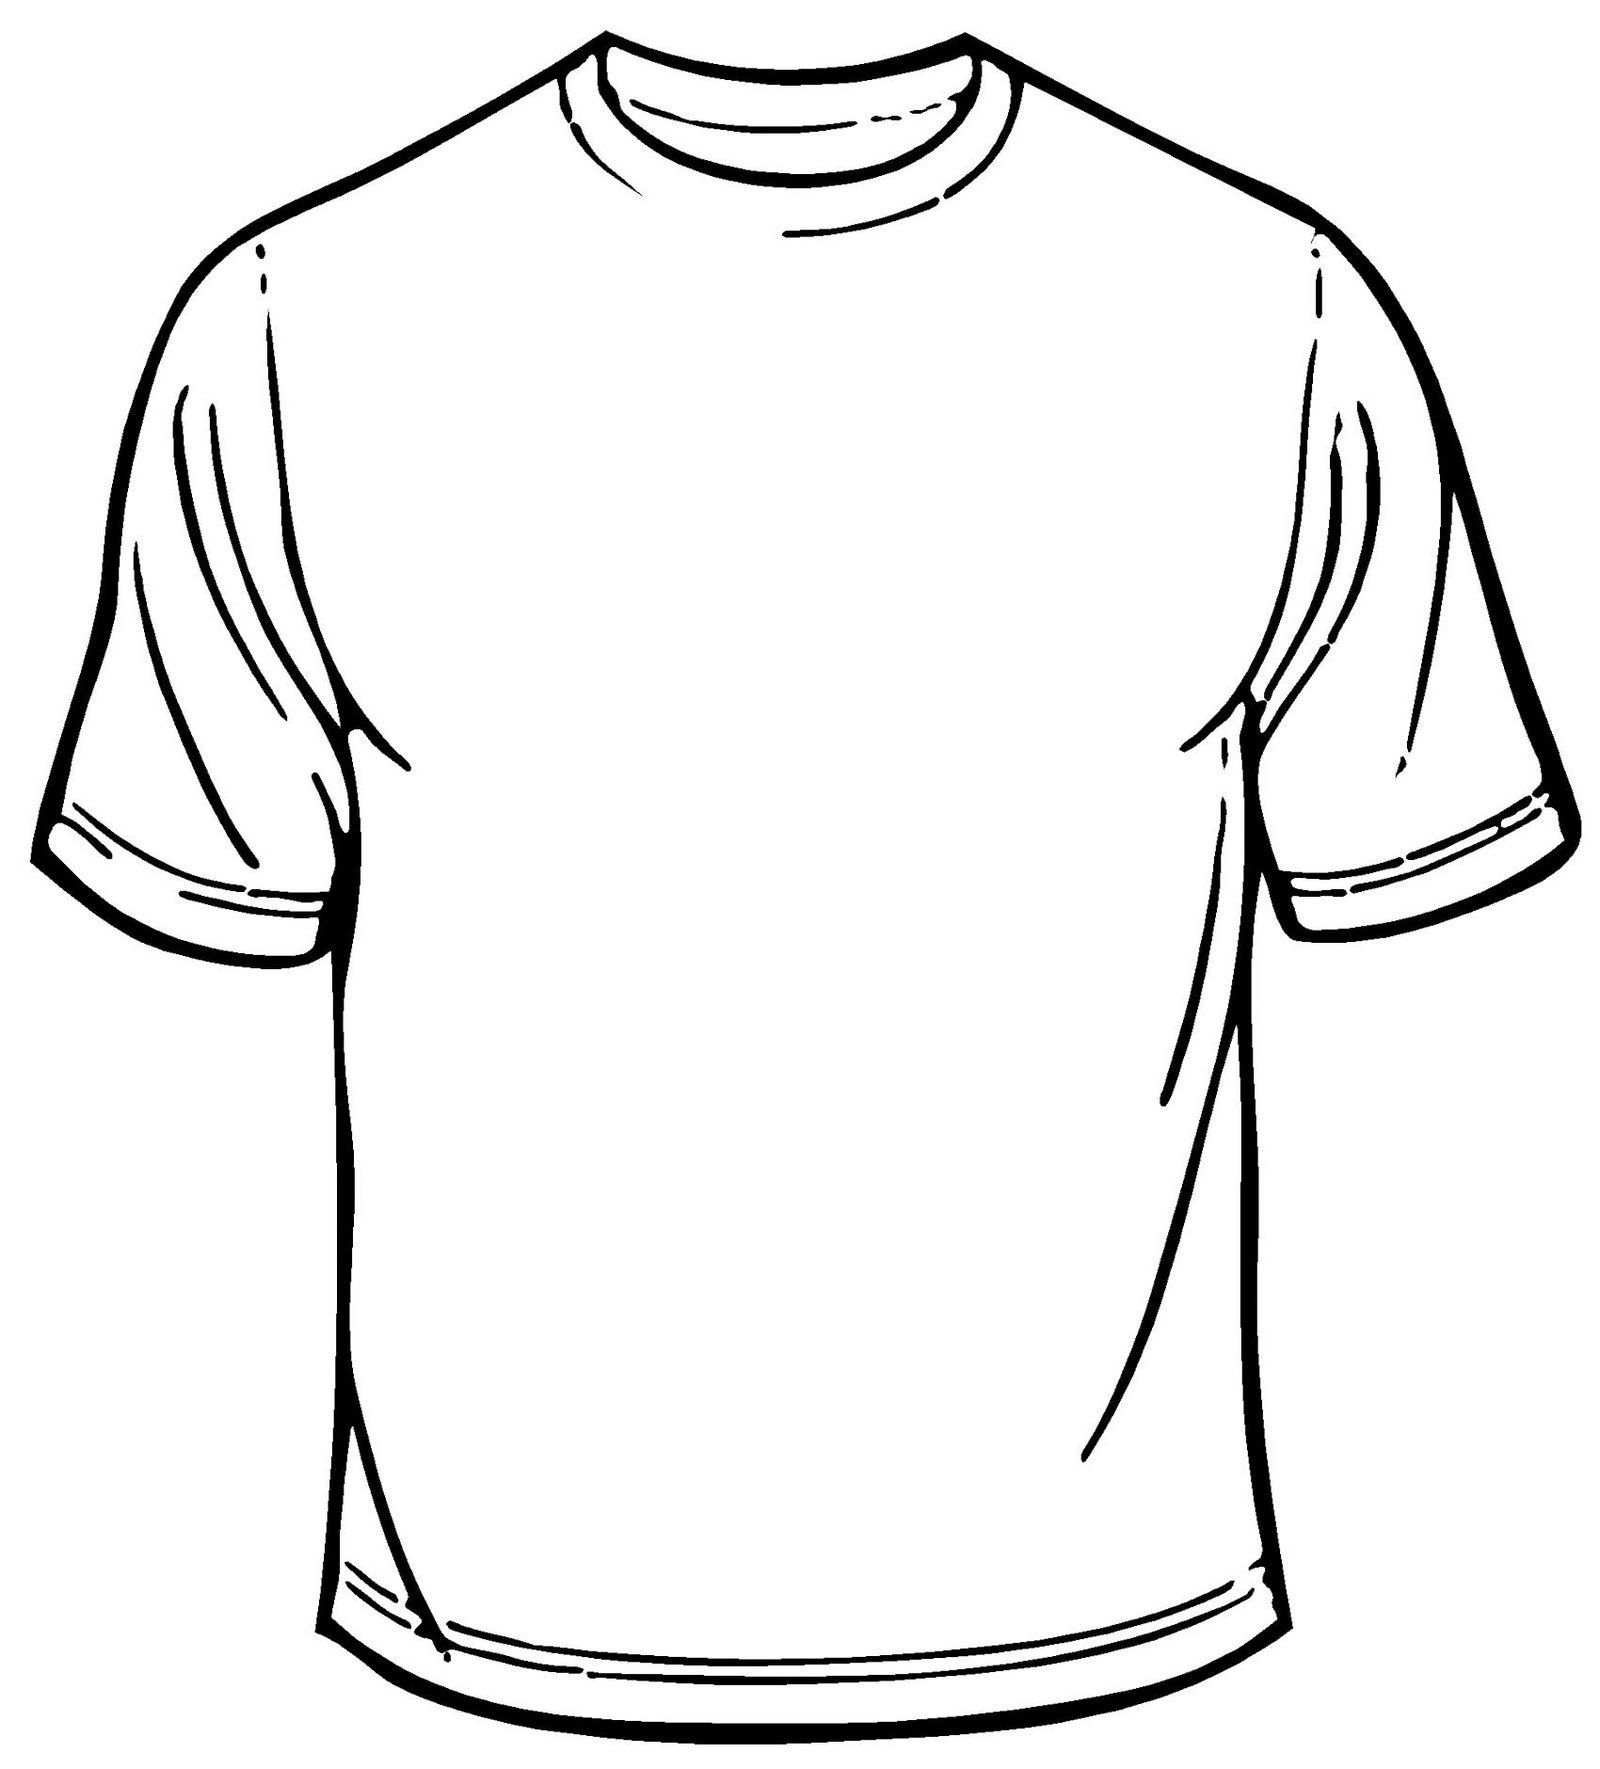 t shirt coloring pages t shirt coloring clipart best shirt coloring pages t